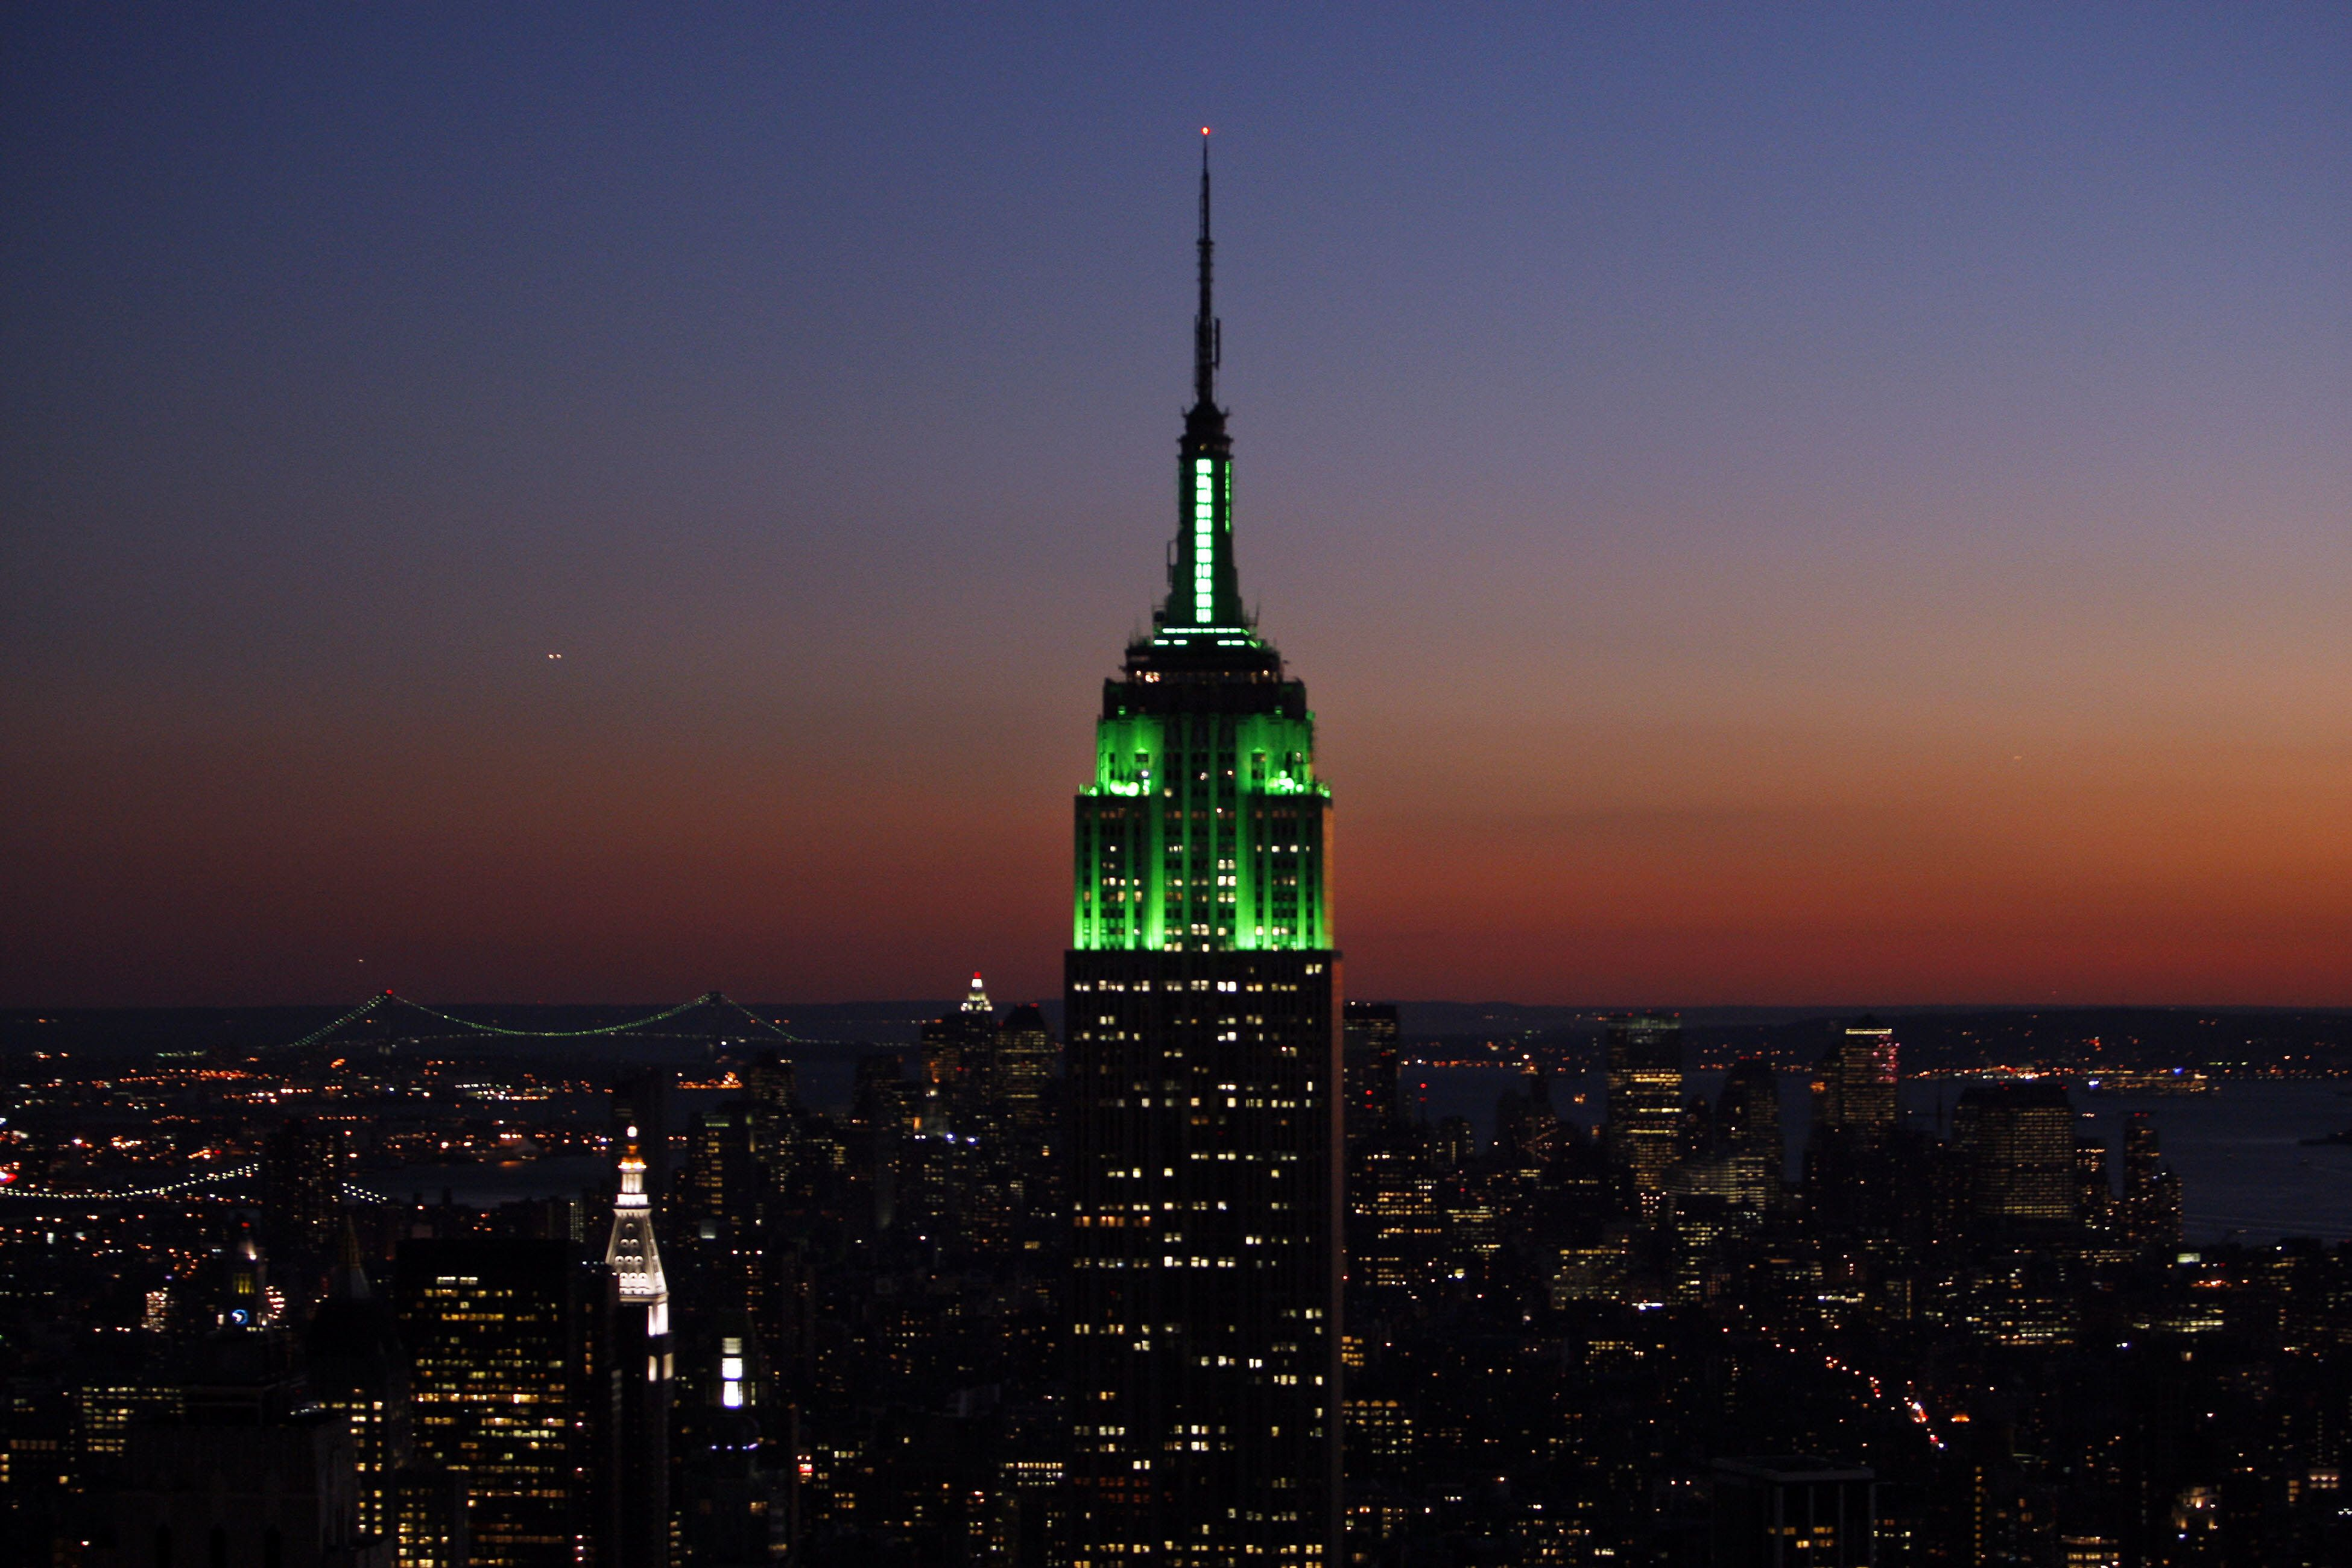 The Empire State Building is illuminated with green lights at sunset in honor of the Muslim holiday Eid-al-Fitr that marks the end of Ramadan, 12 October 2007 in New York.  (Photo credit should read STAN HONDA/AFP/Getty Images)